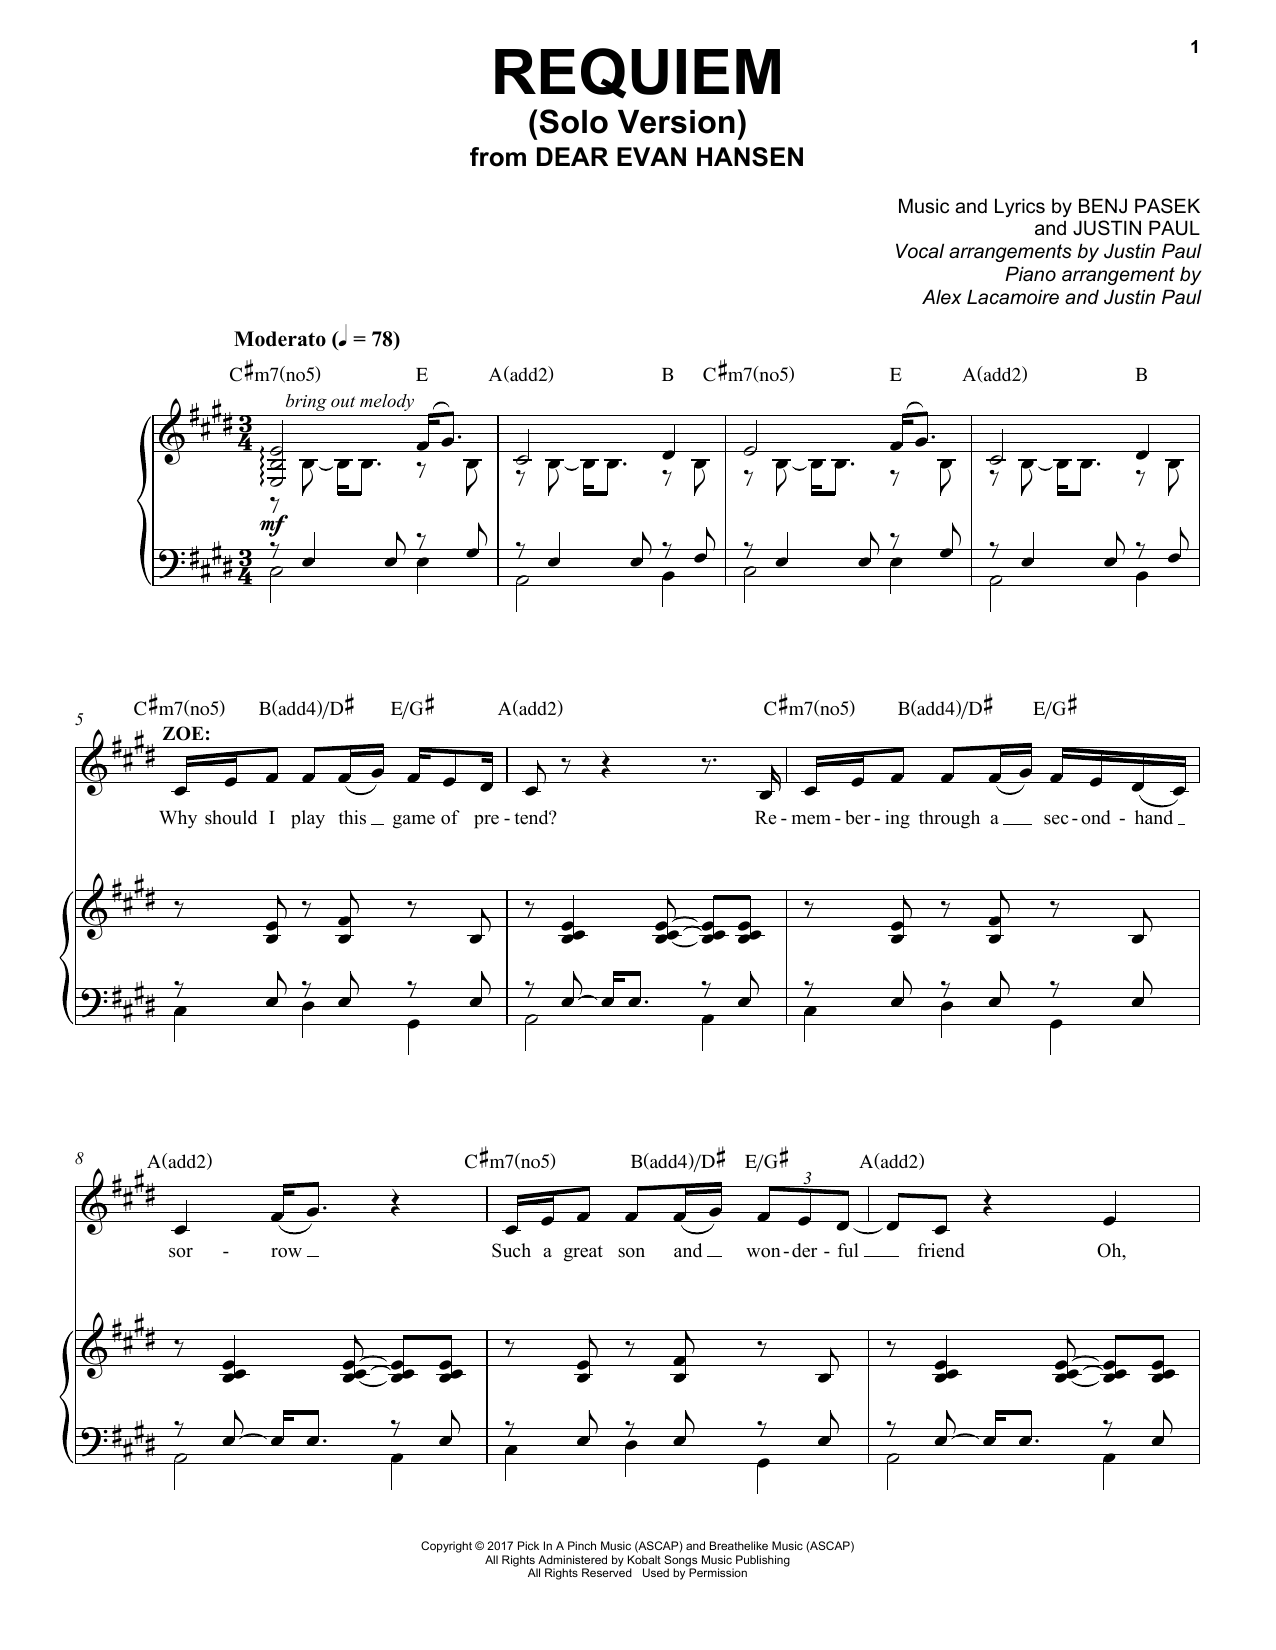 Pasek & Paul Requiem (Solo Version) (from Dear Evan Hansen) sheet music notes and chords. Download Printable PDF.